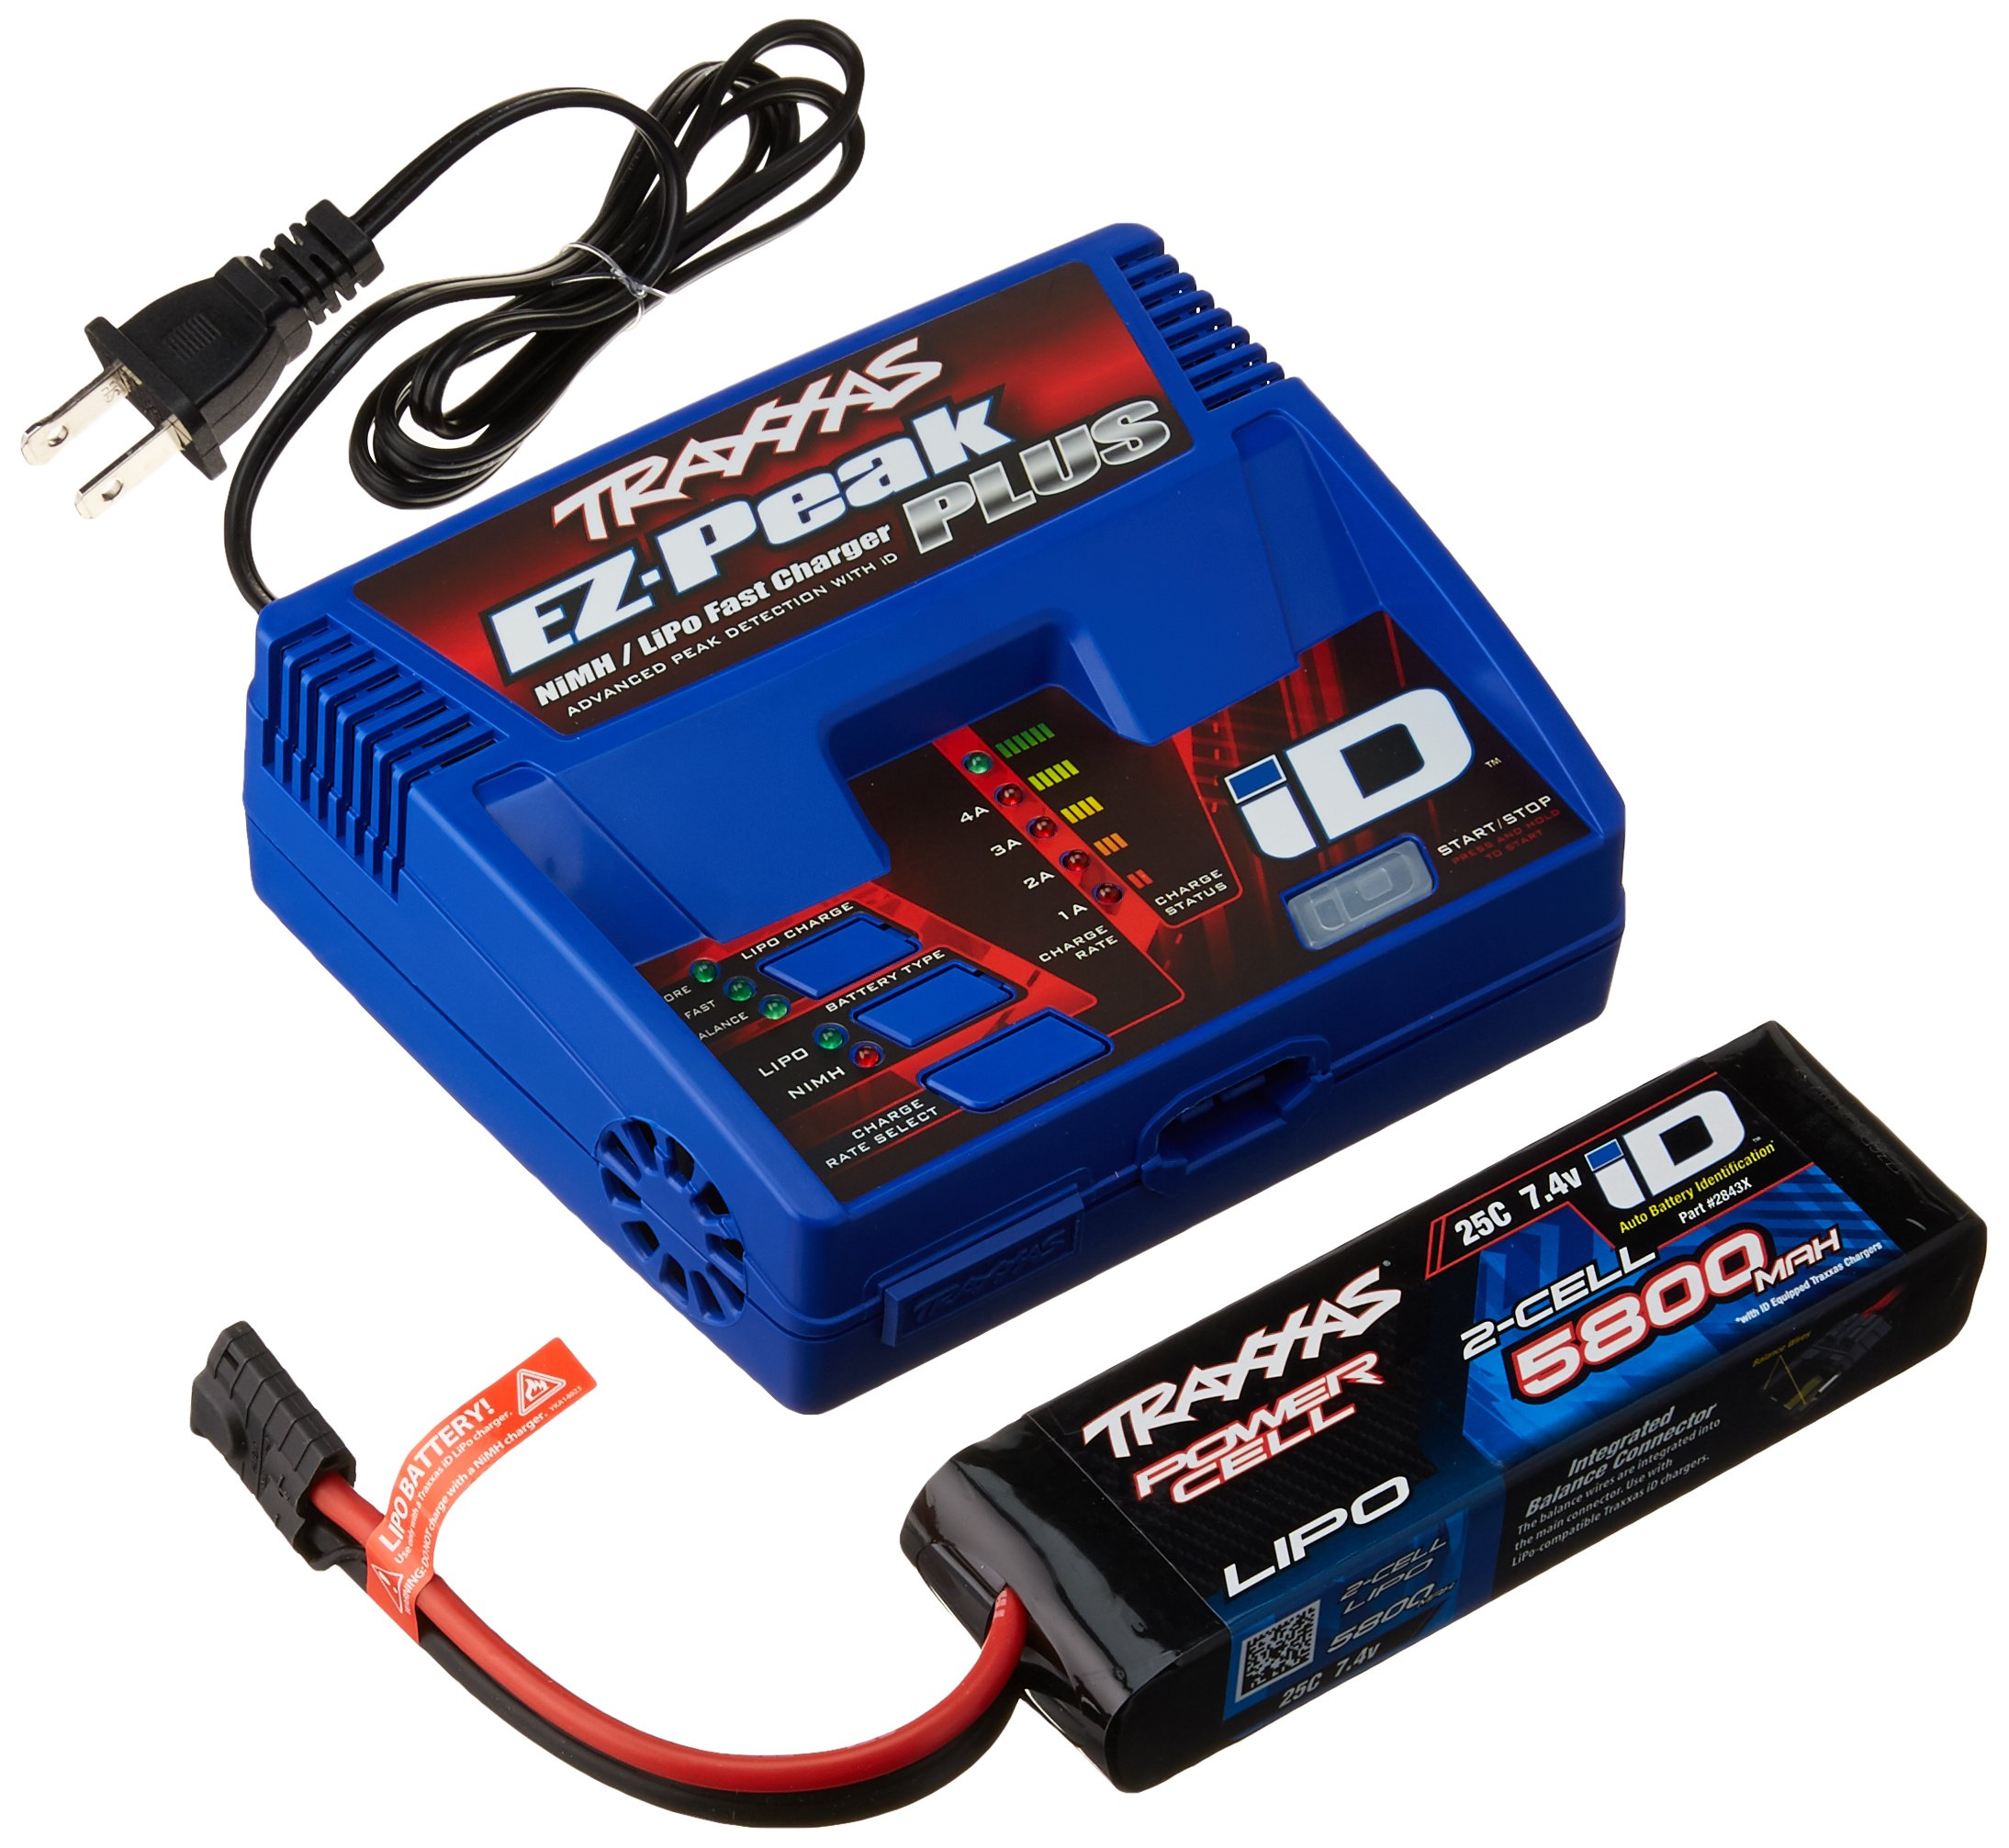 traxxas 2 amp charger manual